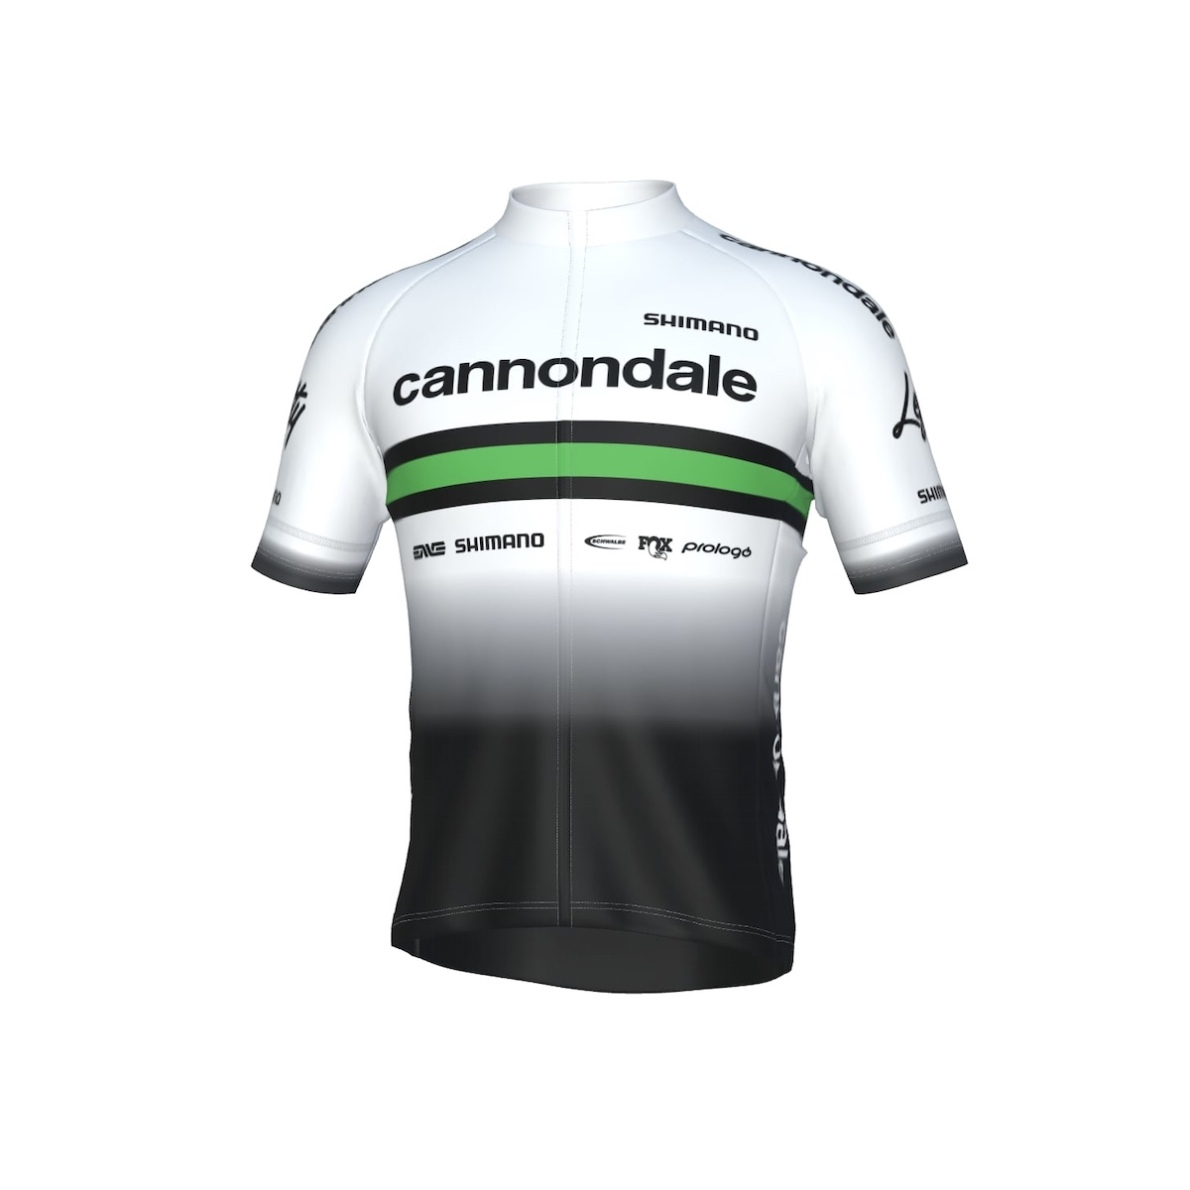 Cannondale Factory Racing Team 2020 Fietsshirt Wit